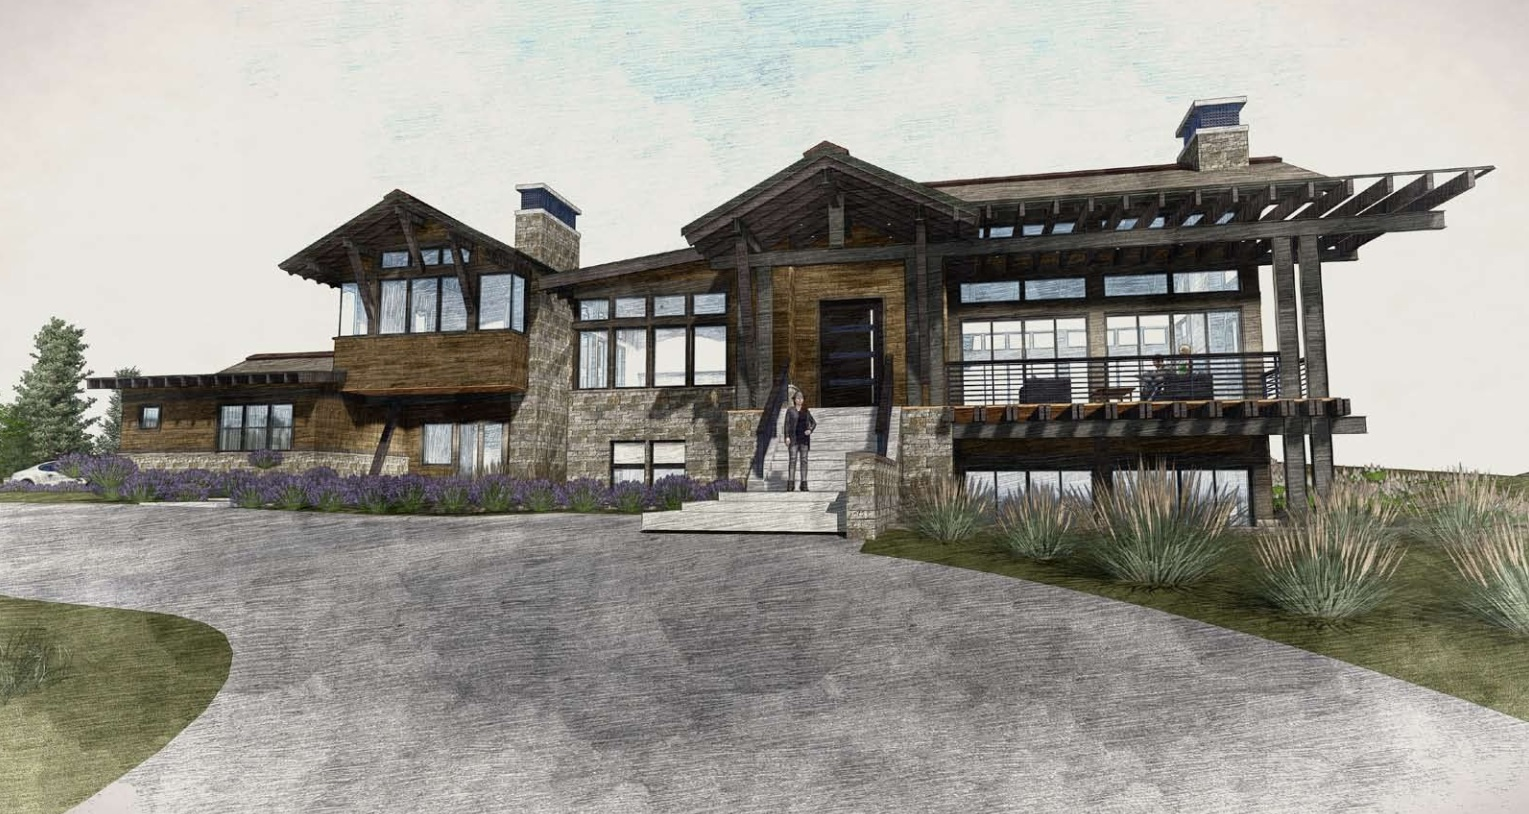 Think Architecture Partner with Germania Construction experts in custom home builds